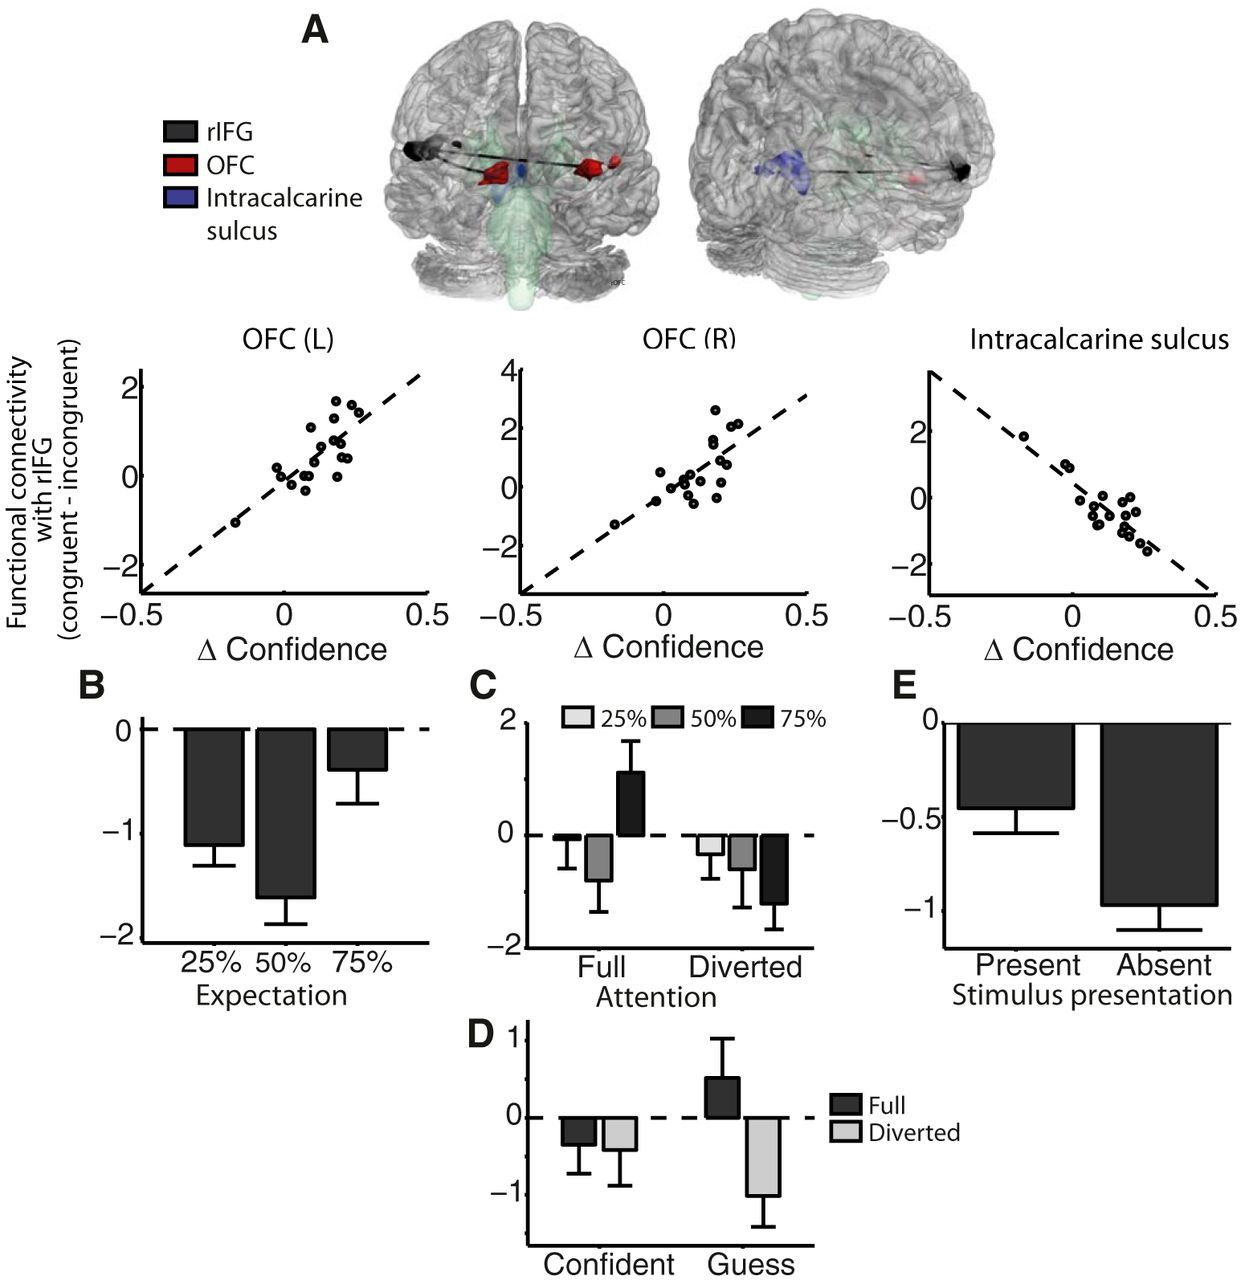 Predictions Shape Confidence In Right Inferior Frontal Gyrus